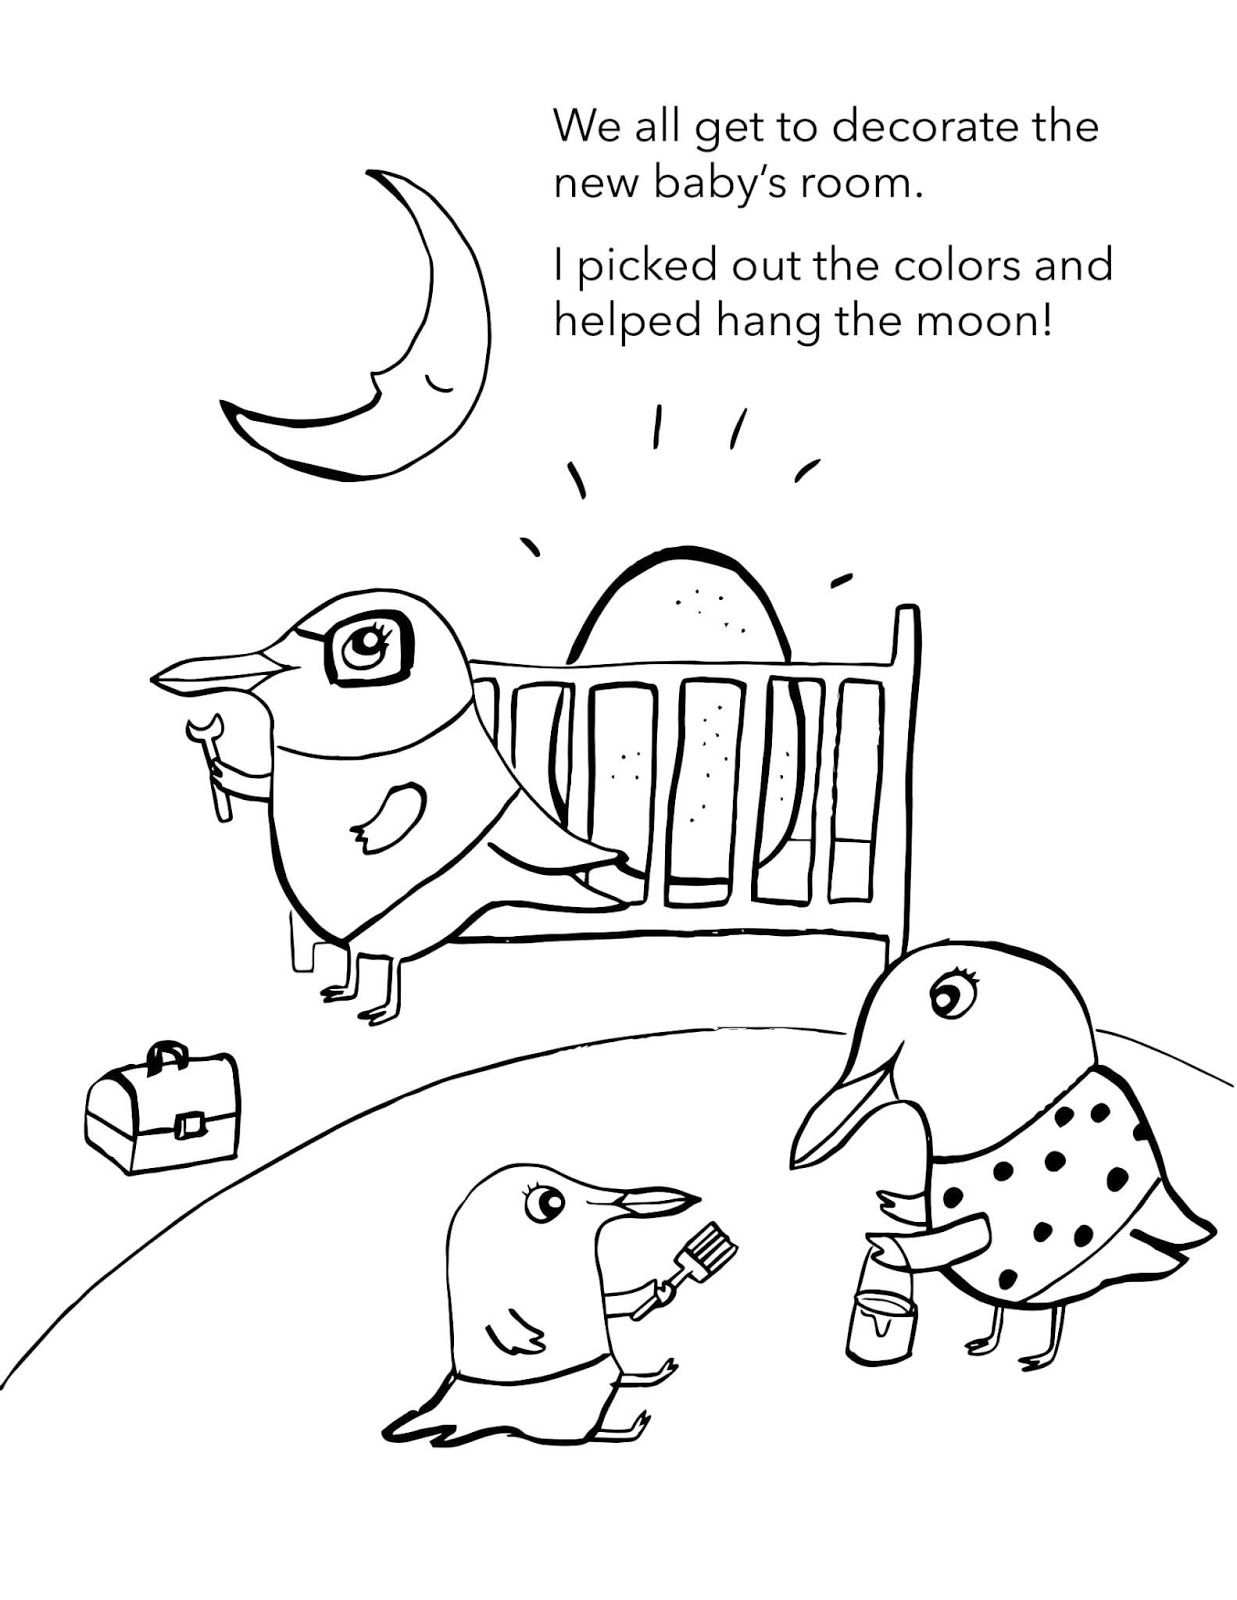 Thriving heights sibling coloring book coloring bookcoloringcoloring pages colouringadult